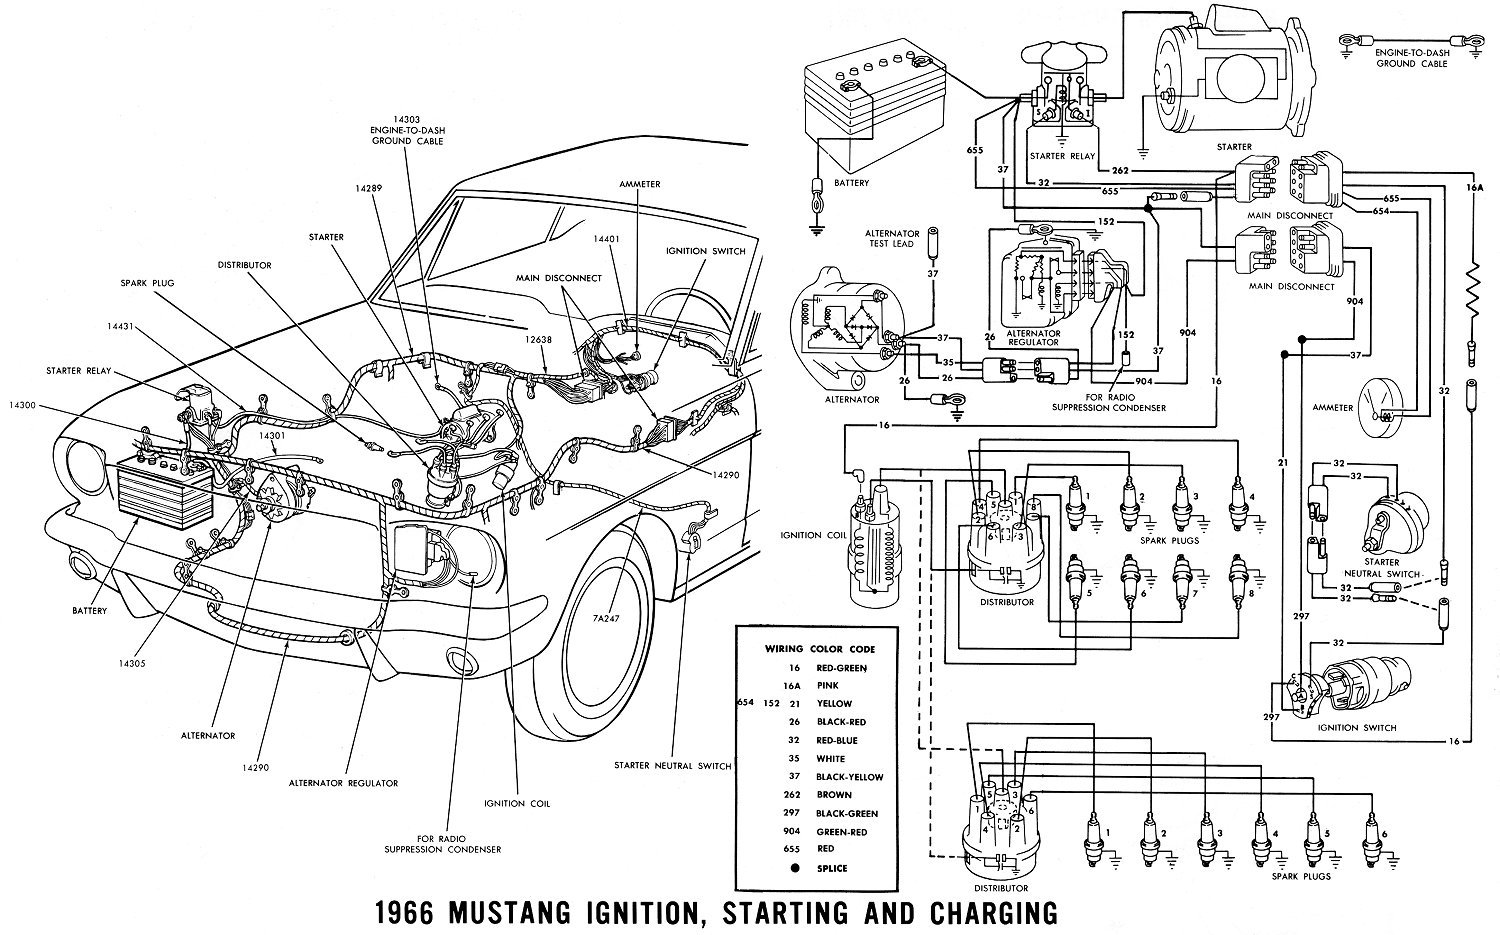 1980 ford mustang vacuum diagram